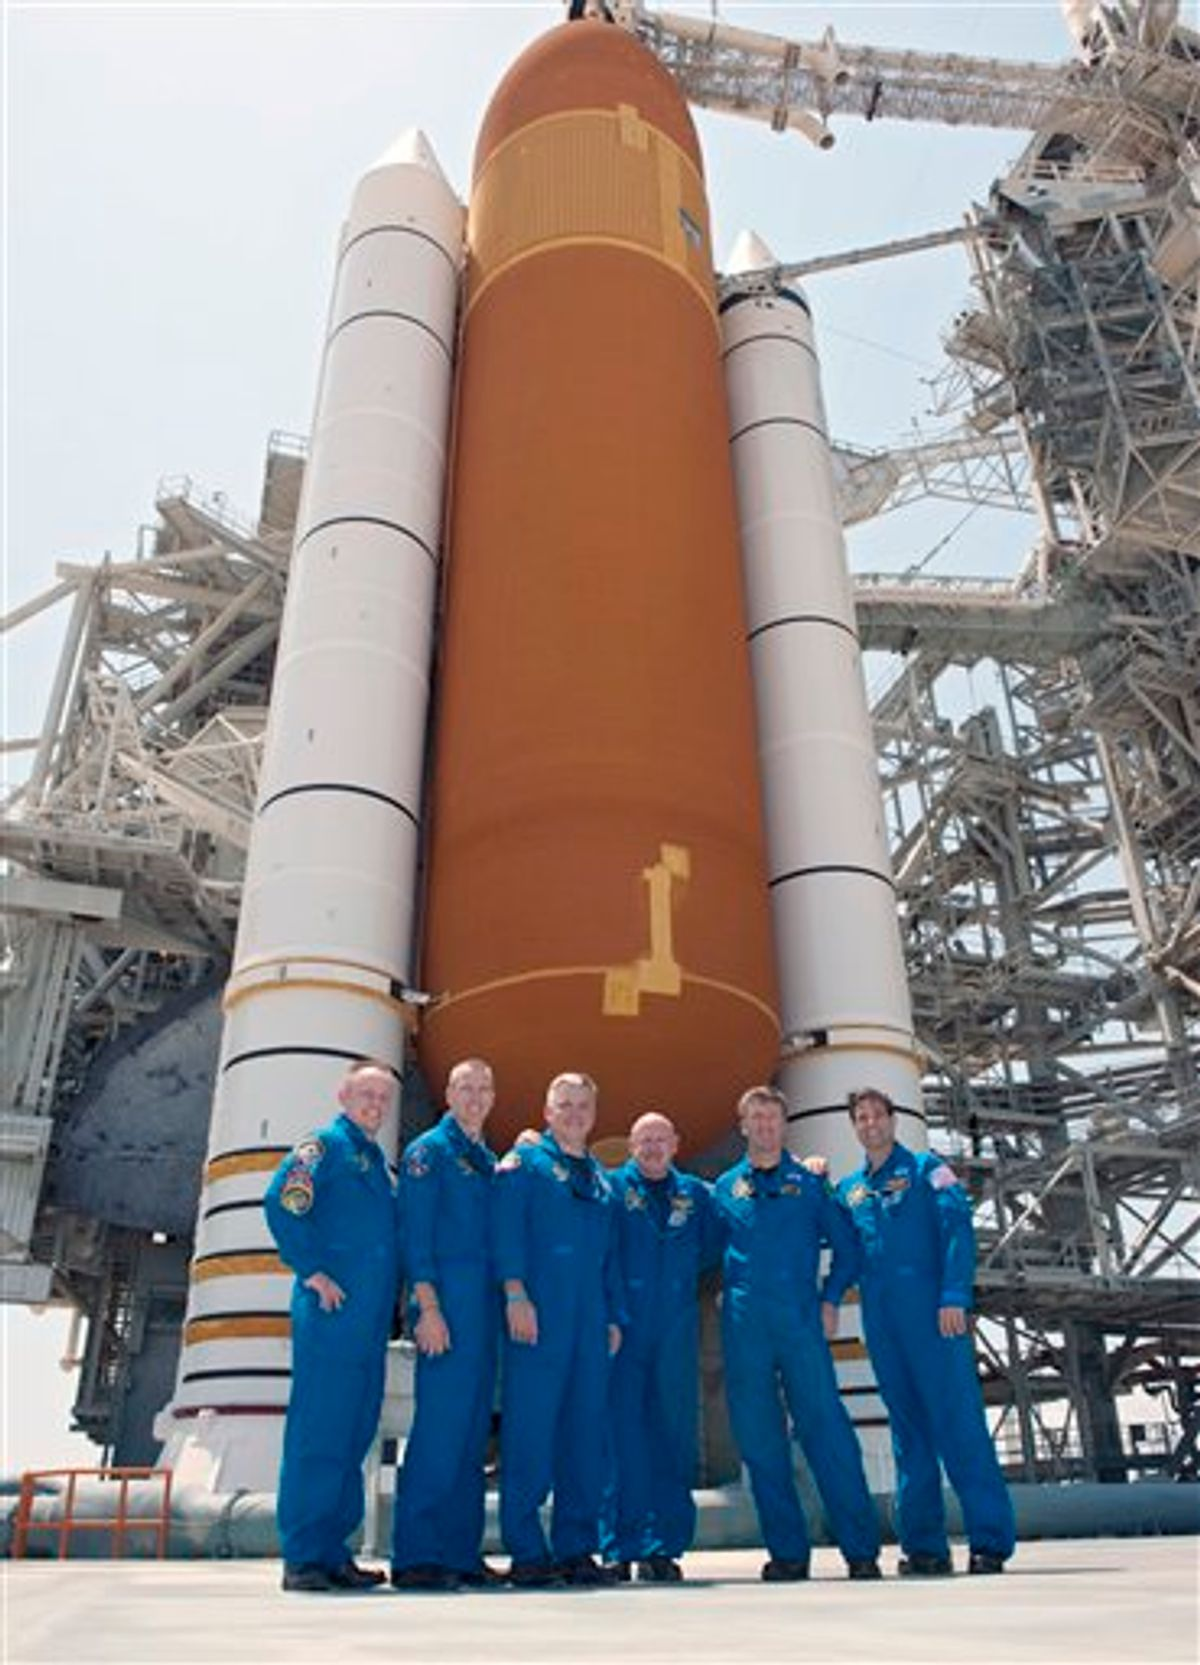 In this picture made available by NASA, the last crew of the space shuttle Endeavour stands together on Launch Pad 39A in front of its external fuel tank and solid rocket boosters at the Kennedy Space Center in Cape Canaveral, Fla. on Thursday, April 28, 2011, one day before its final flight. From left are Mission Specialists Michael Fincke, Andrew Feustel, Pilot Greg H. Johnson, Commander Mark Kelly, European Space Agency astronaut Roberto Vittori and Mission Specialist Greg Chamitoff. (AP Photo/NASA, Kim Shiflett)  (AP)